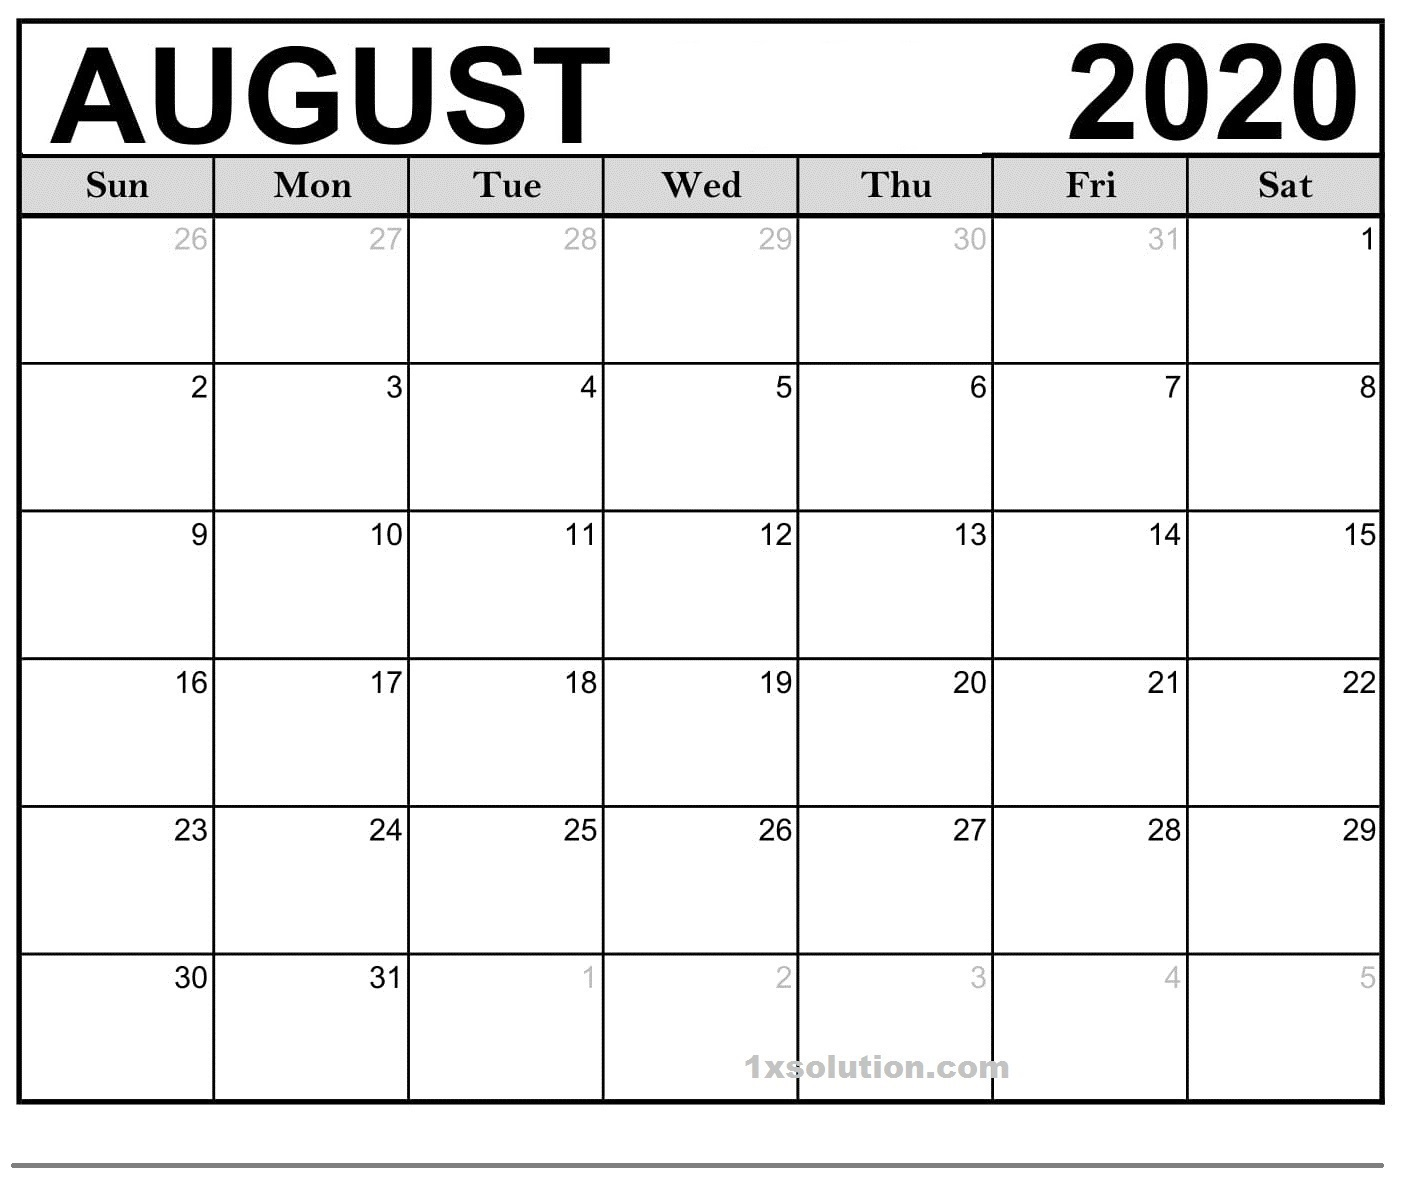 Blank August 2020 Calendar Download